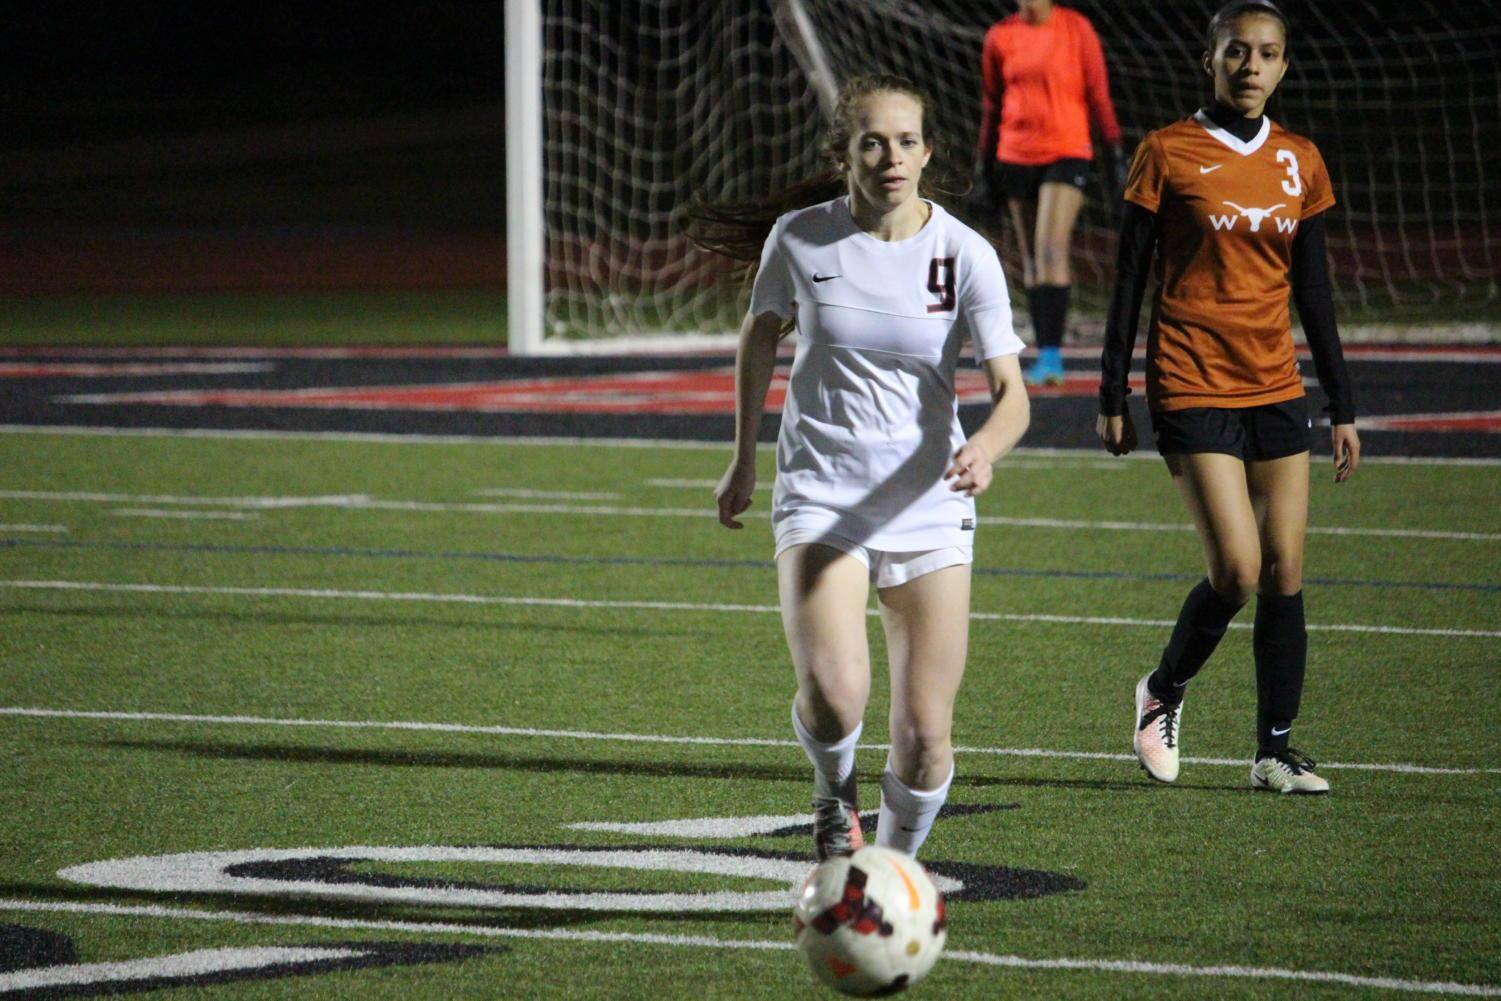 Coppell+High+School+senior+Rebecca+Watley+runs+for+the+ball+during+the+first+half+of+Tuesday+nights+home+game+at+Buddy+Echols+Field.+The+varsity+girls+soccer+team+played+against+WT+White+taking+the+win+with+a+score+of+5-1.